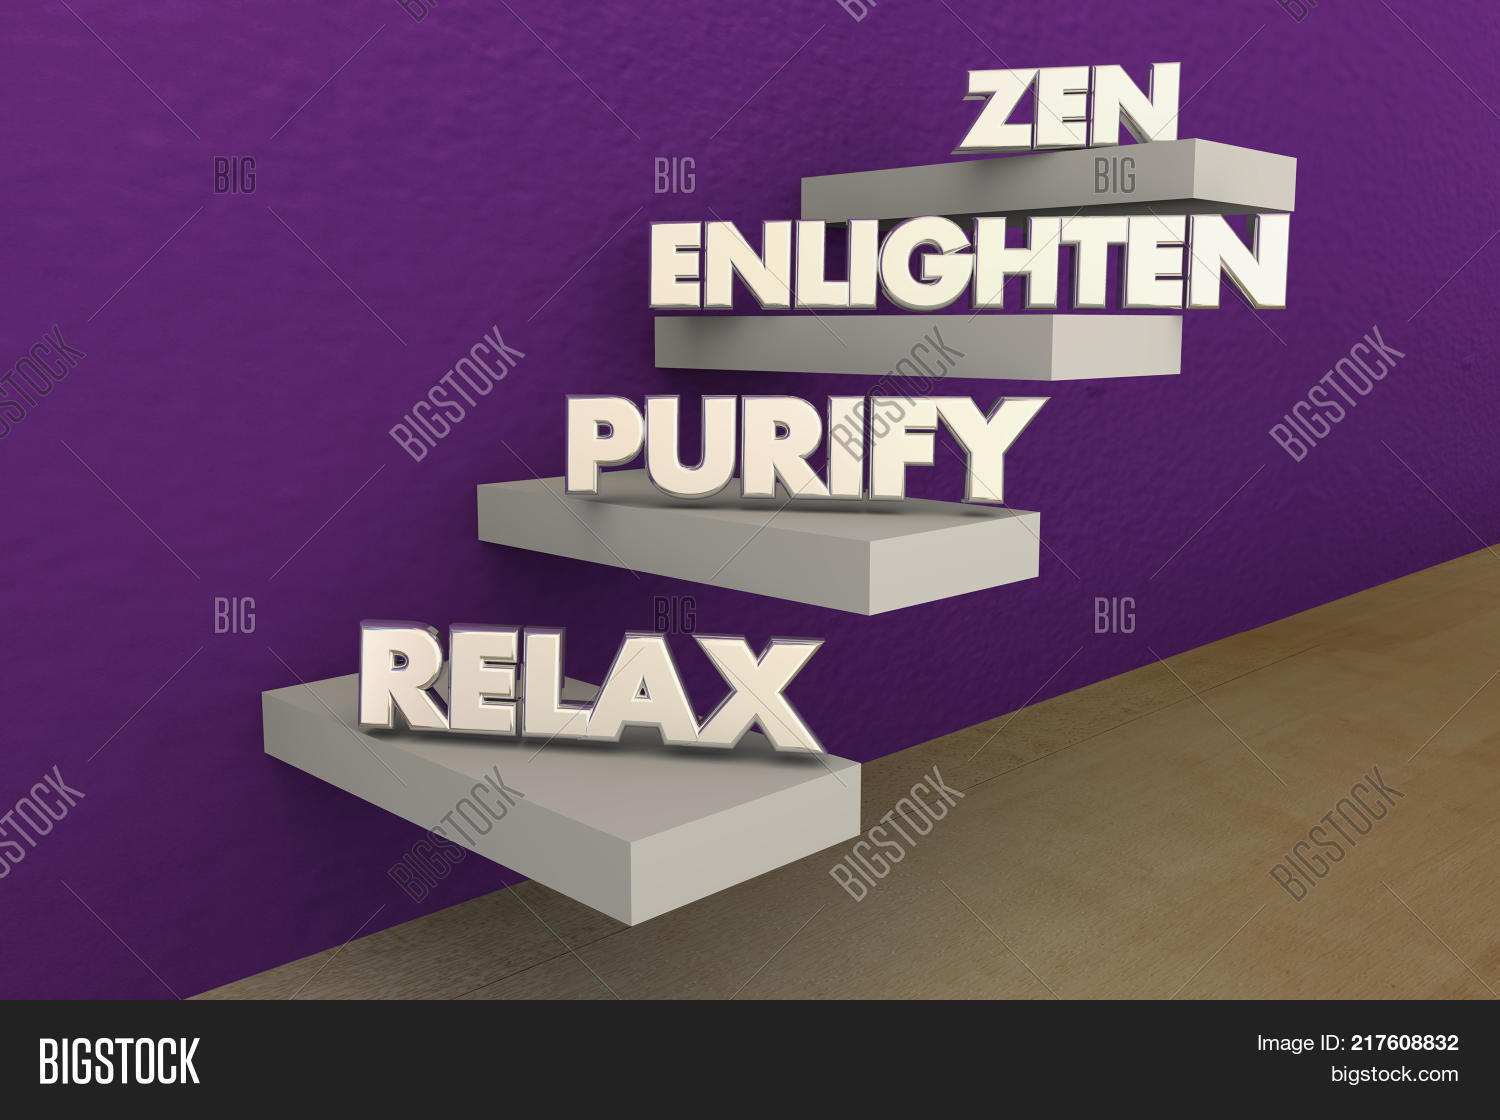 Zen Steps Levels Relax Image & Photo (Free Trial) | Bigstock